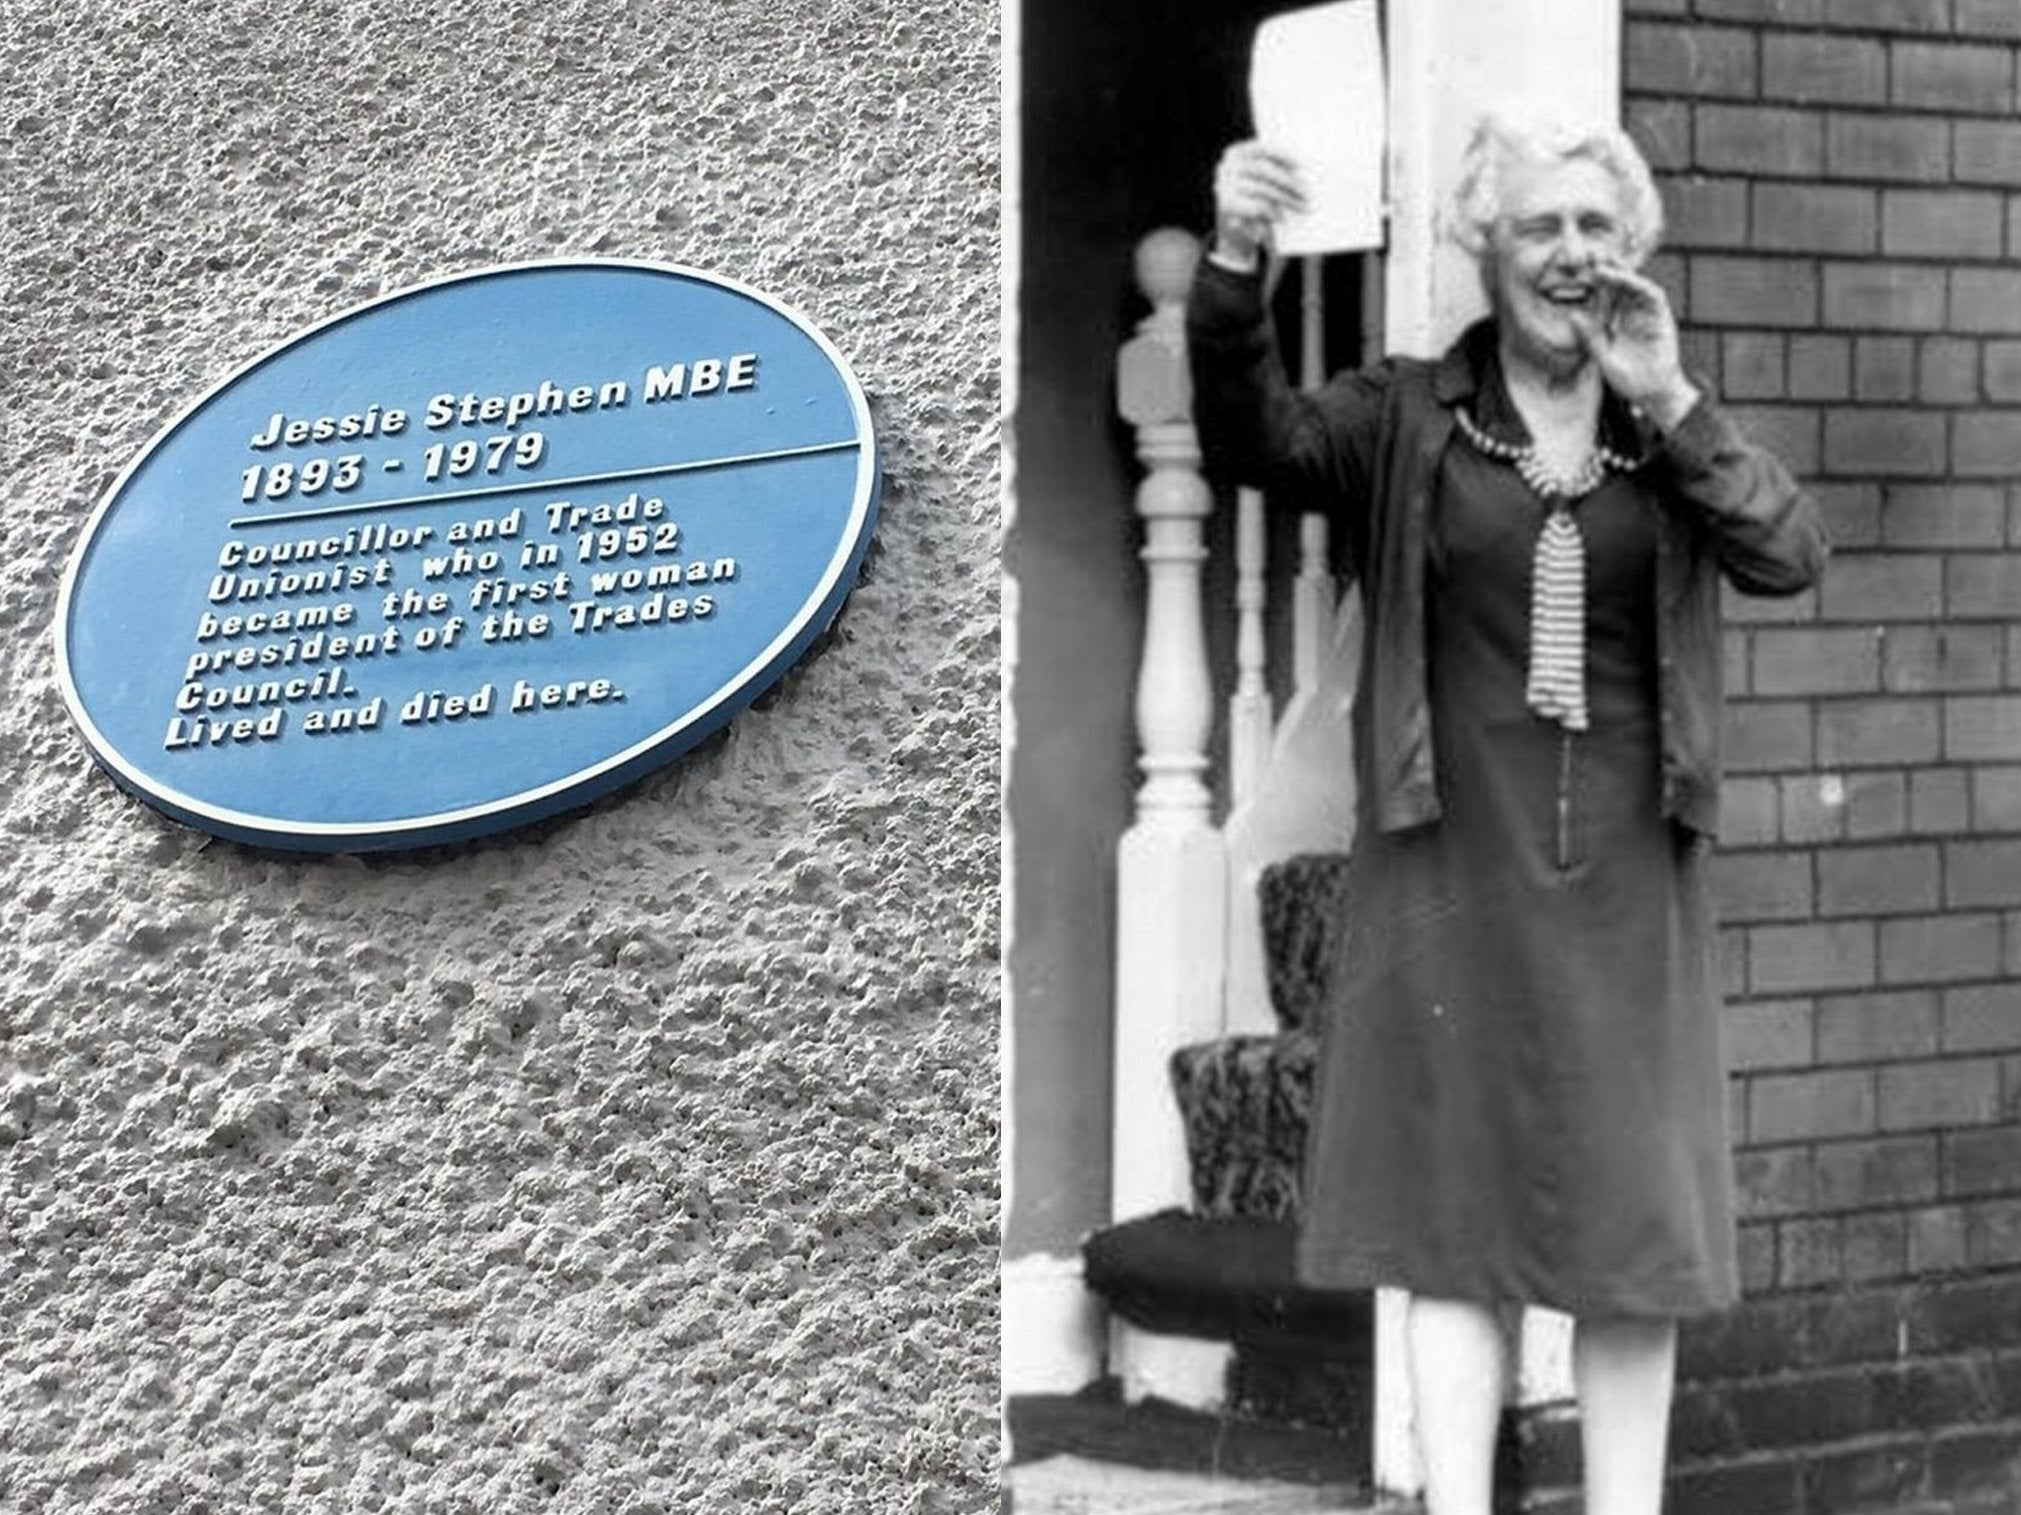 BT telegraph pole removed for blocking plaque for leading suffragette Jessie Stephen